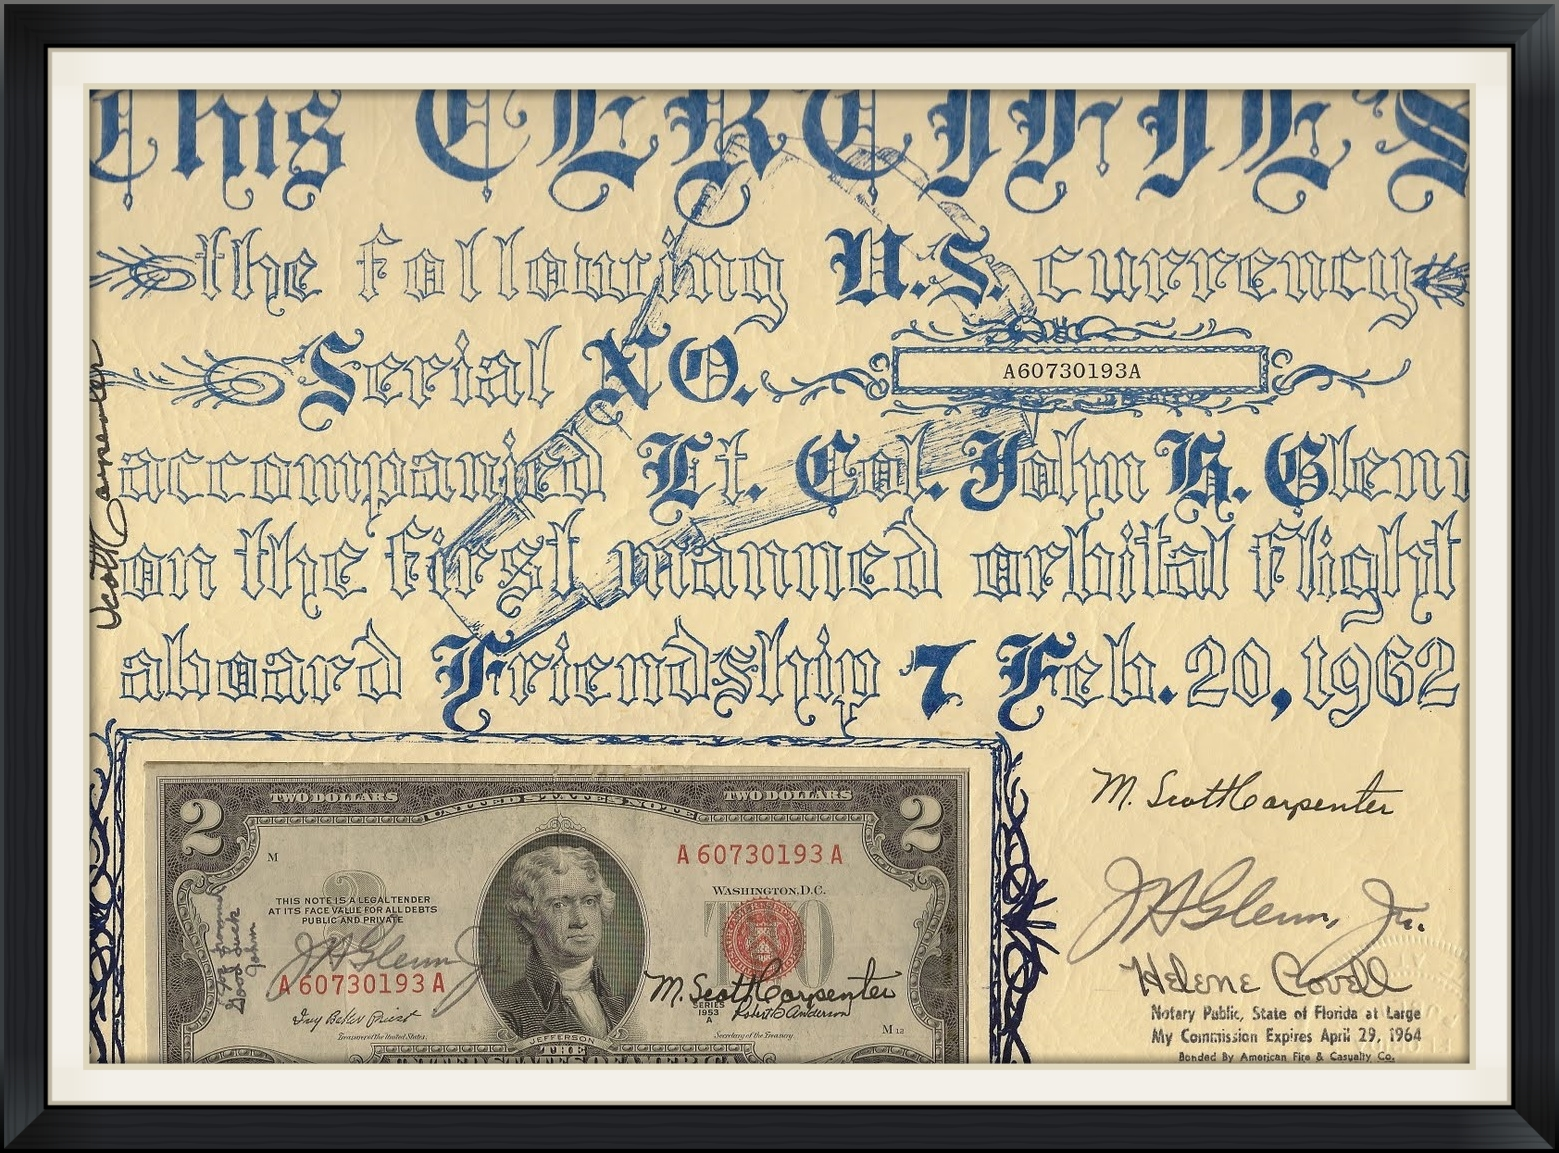 The Glenn flown $2 bill along with its matching flight certificate, notarized by Helene Correll on May 9, 1962. All signatures on the certificate and on the bill are original, including those of back-up pilot Scott Carpenter, and that of Joe Tramel, the ground support person who placed this bill aboard the capsule.